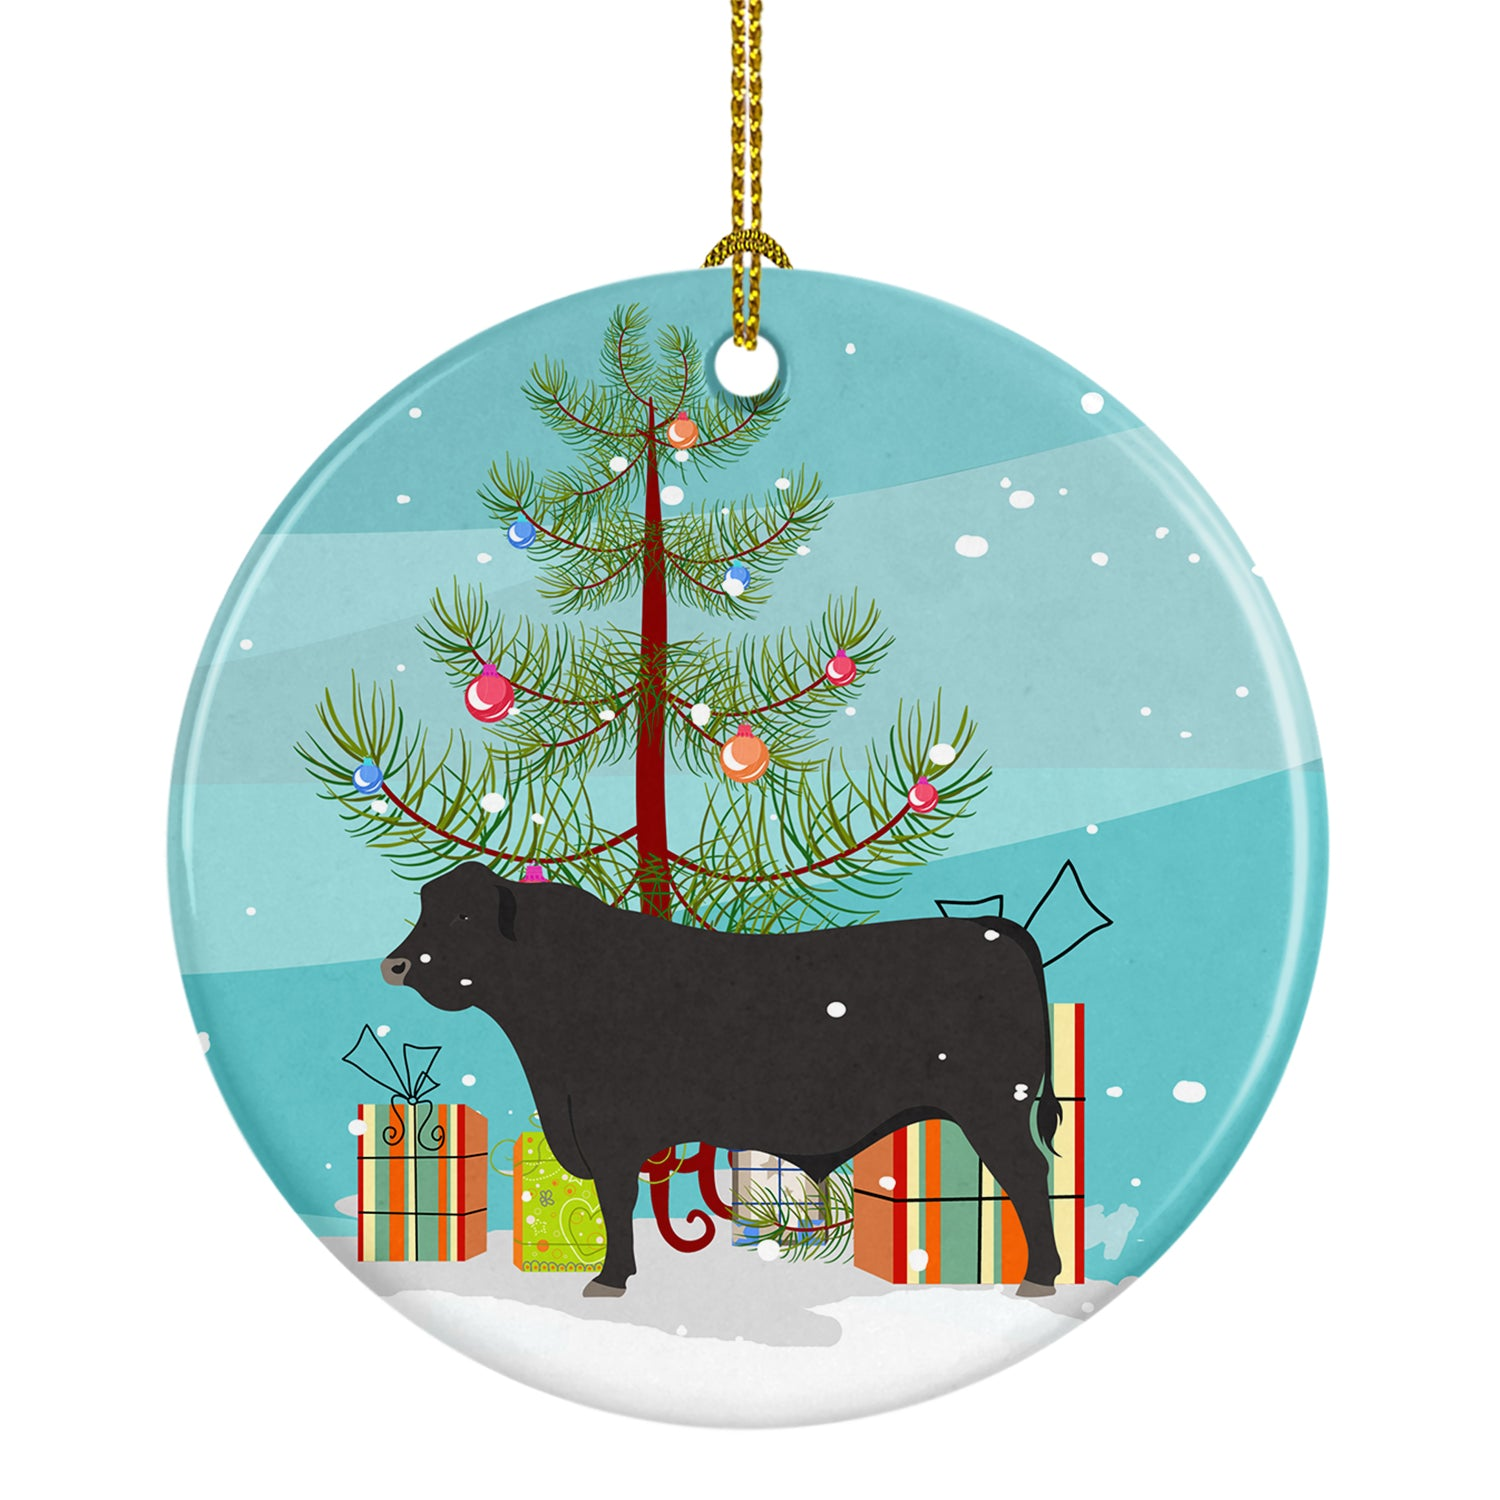 Black Angus Cow Christmas Ceramic Ornament BB9195CO1 by Caroline's Treasures